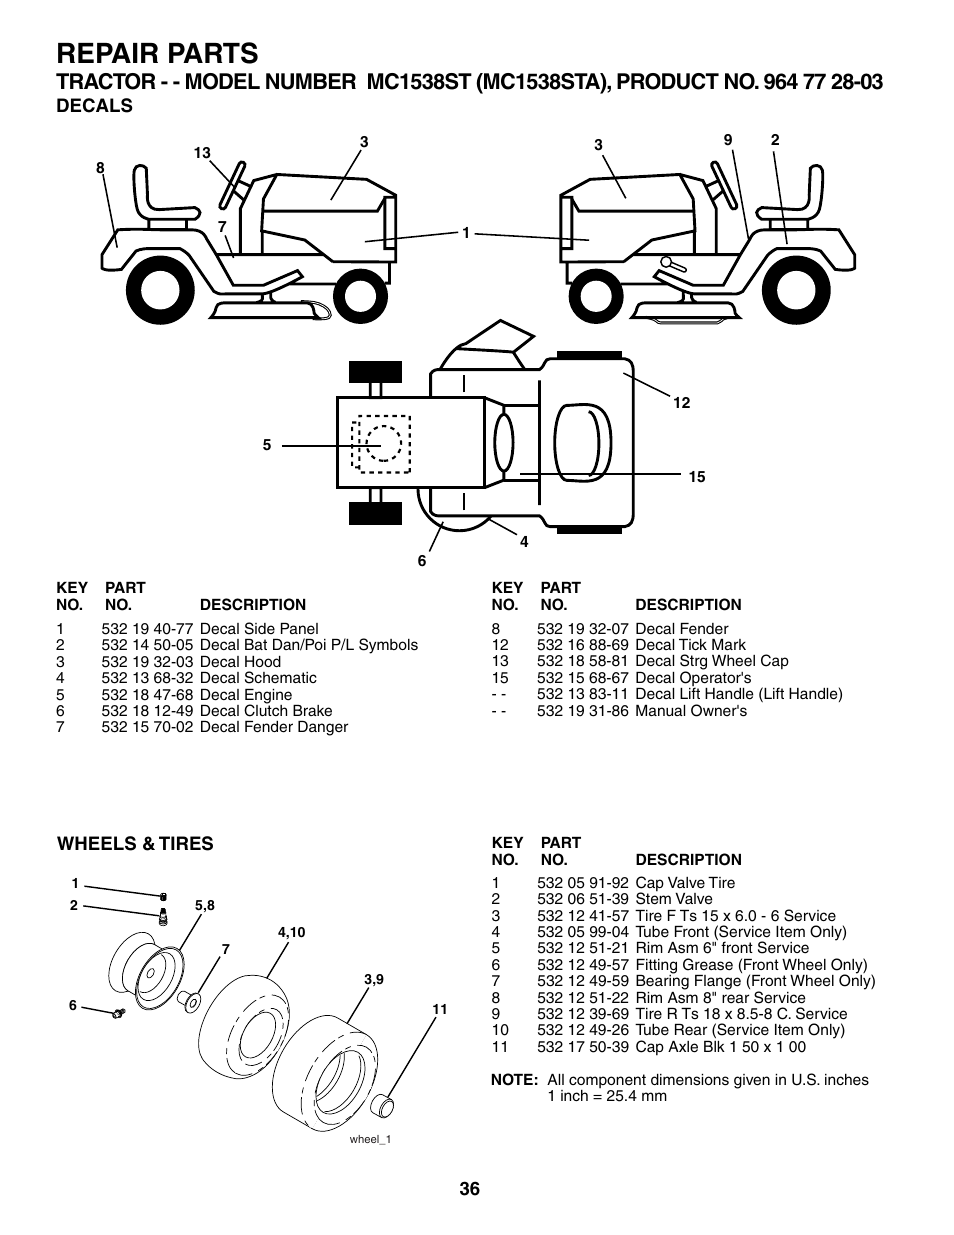 Series 7 Wheel Tires Group Diagram And Parts List Partstreecom